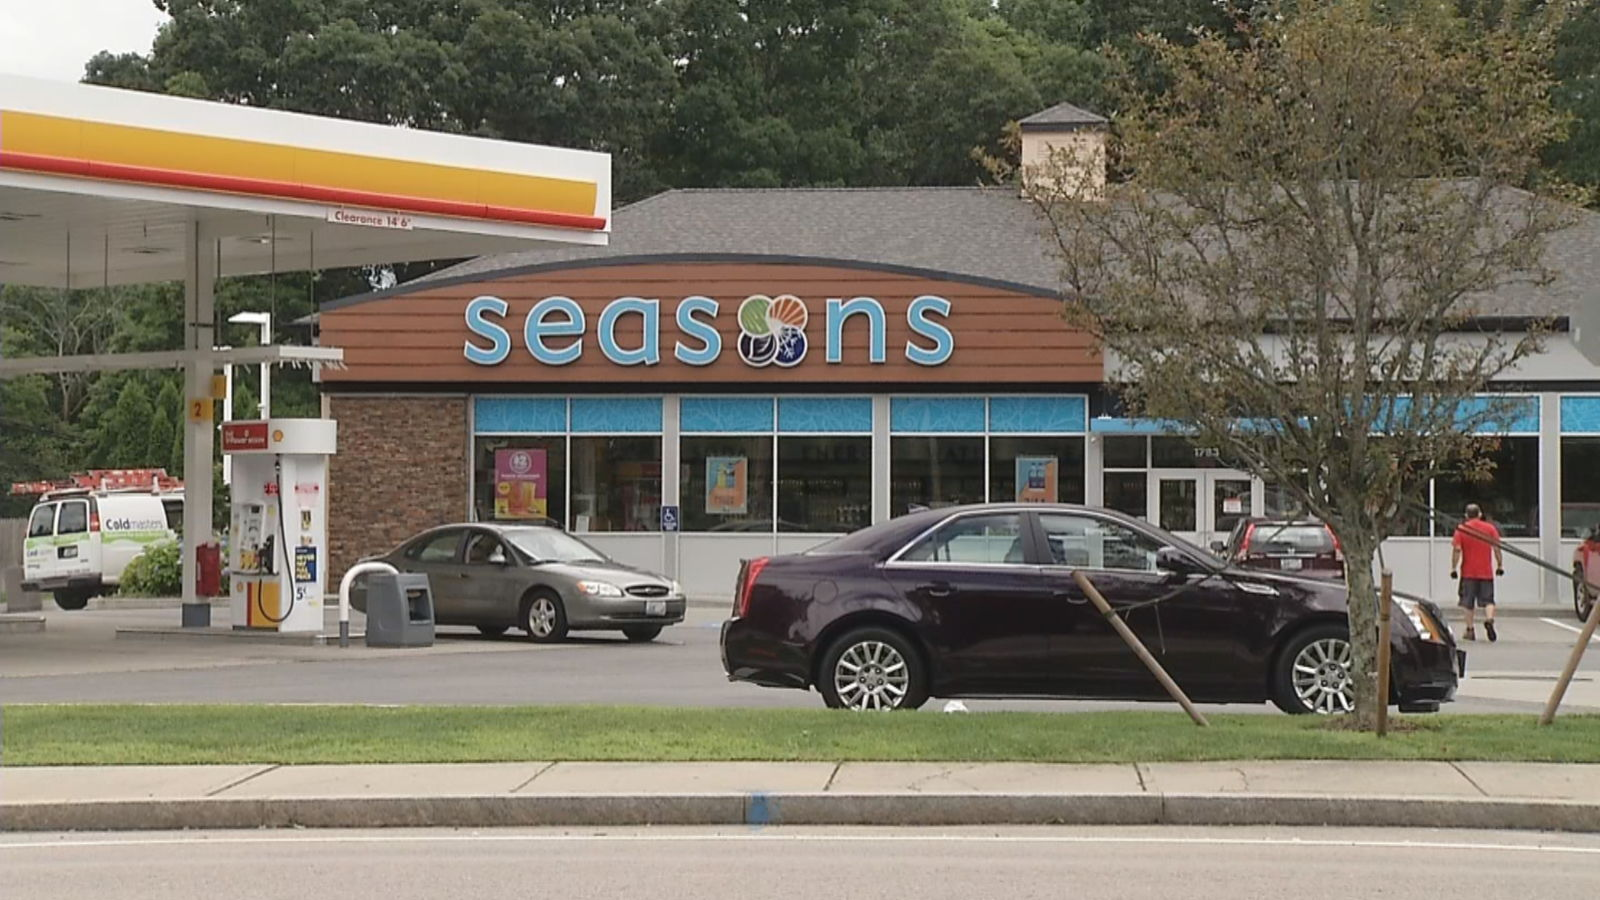 Seasons Market on Old Louisquisset Pike in Lincoln. (WJAR)